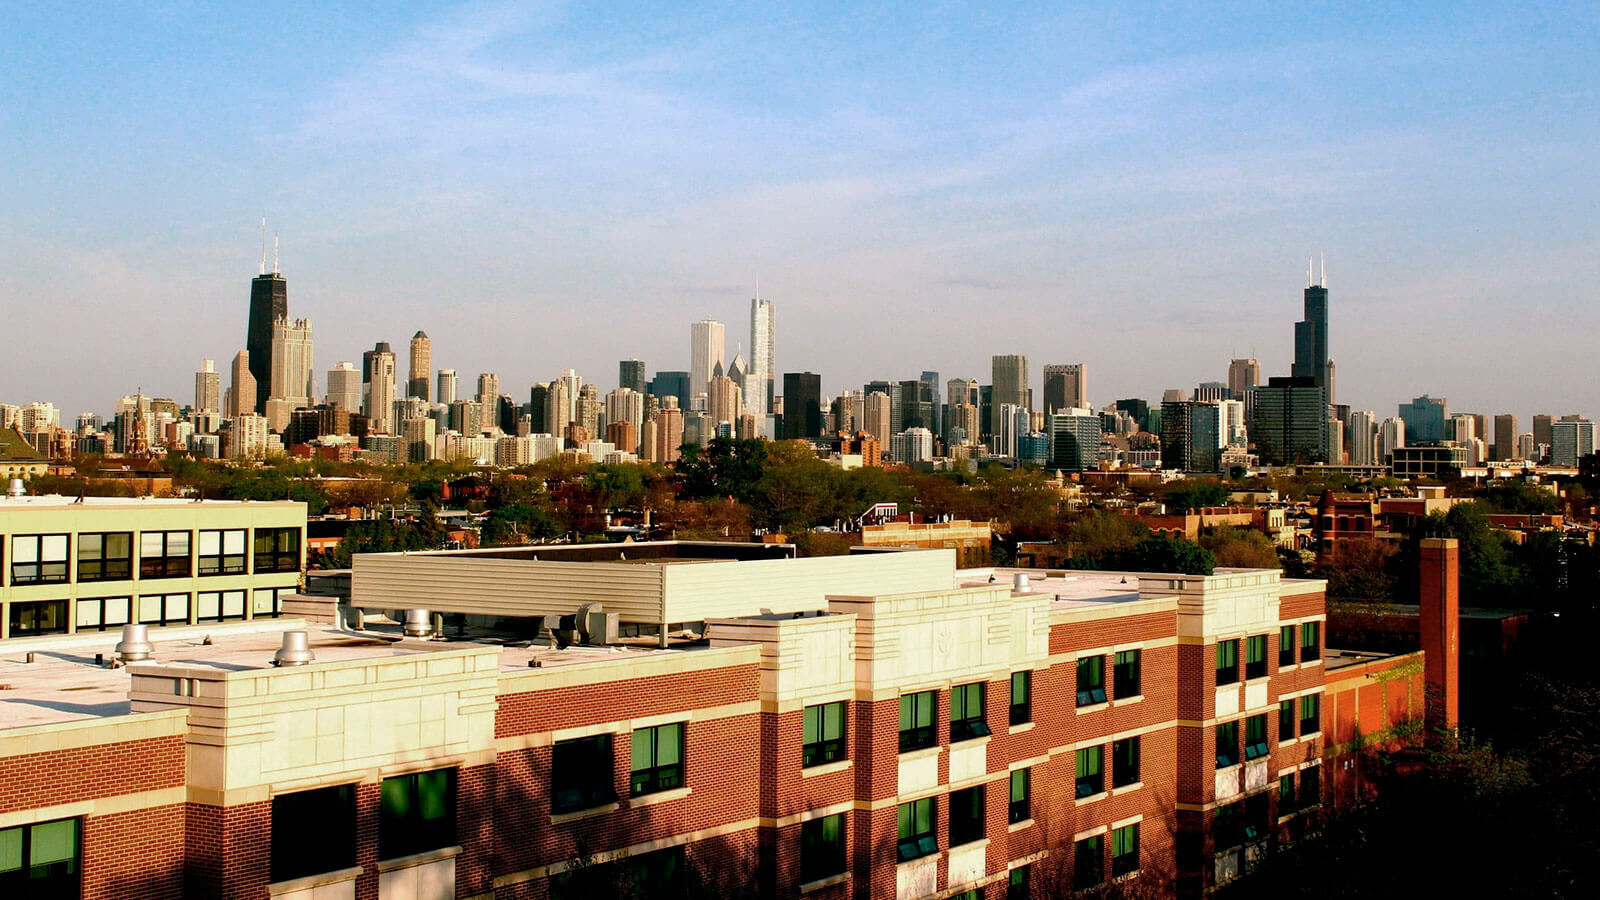 A view of the campus at DePaul University.